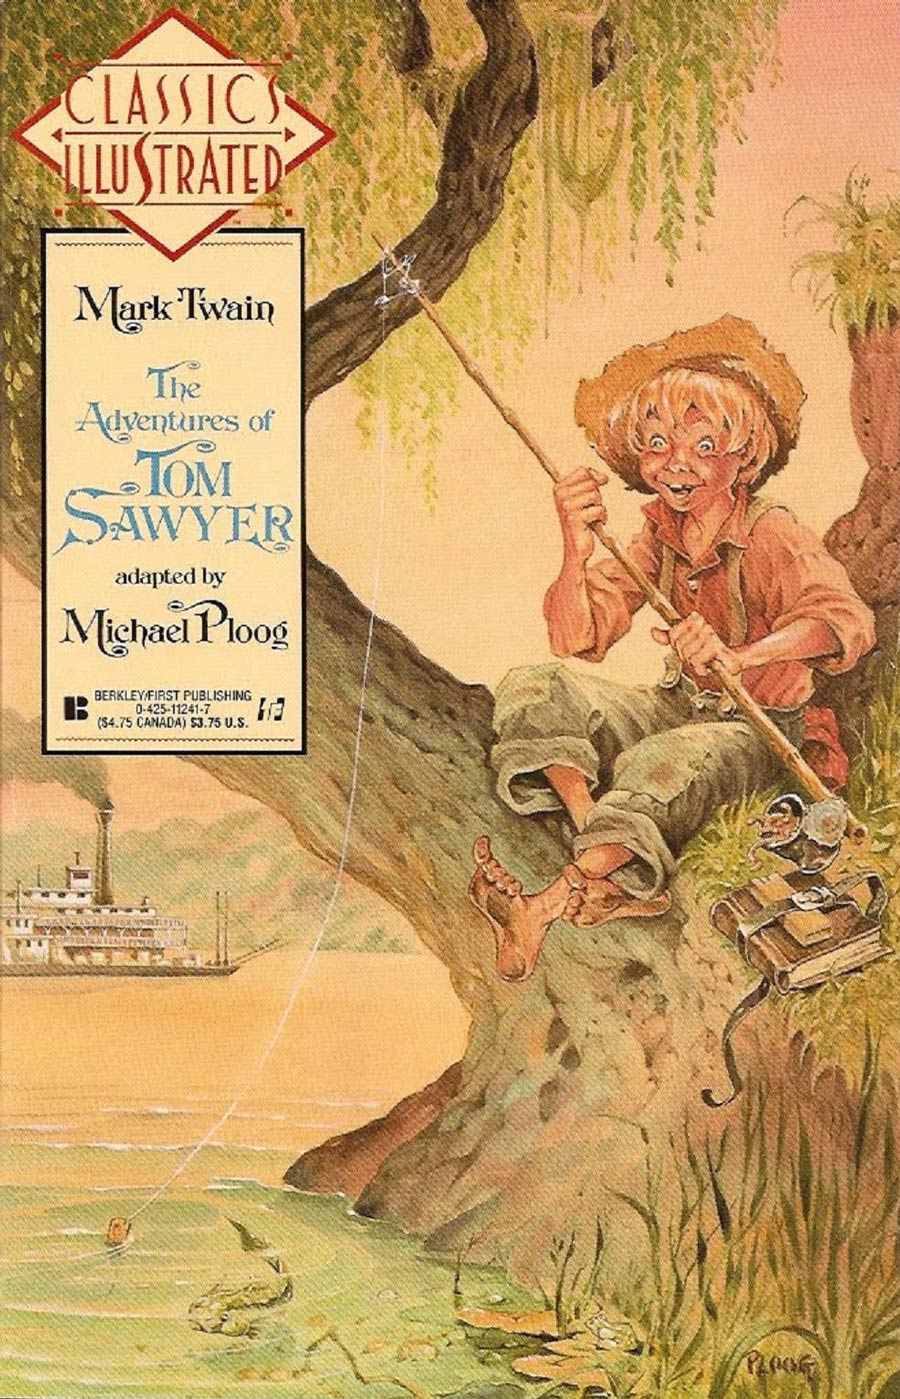 Classics Illustrated Vol 2 #9 The Adventures Of Tom Sawyer